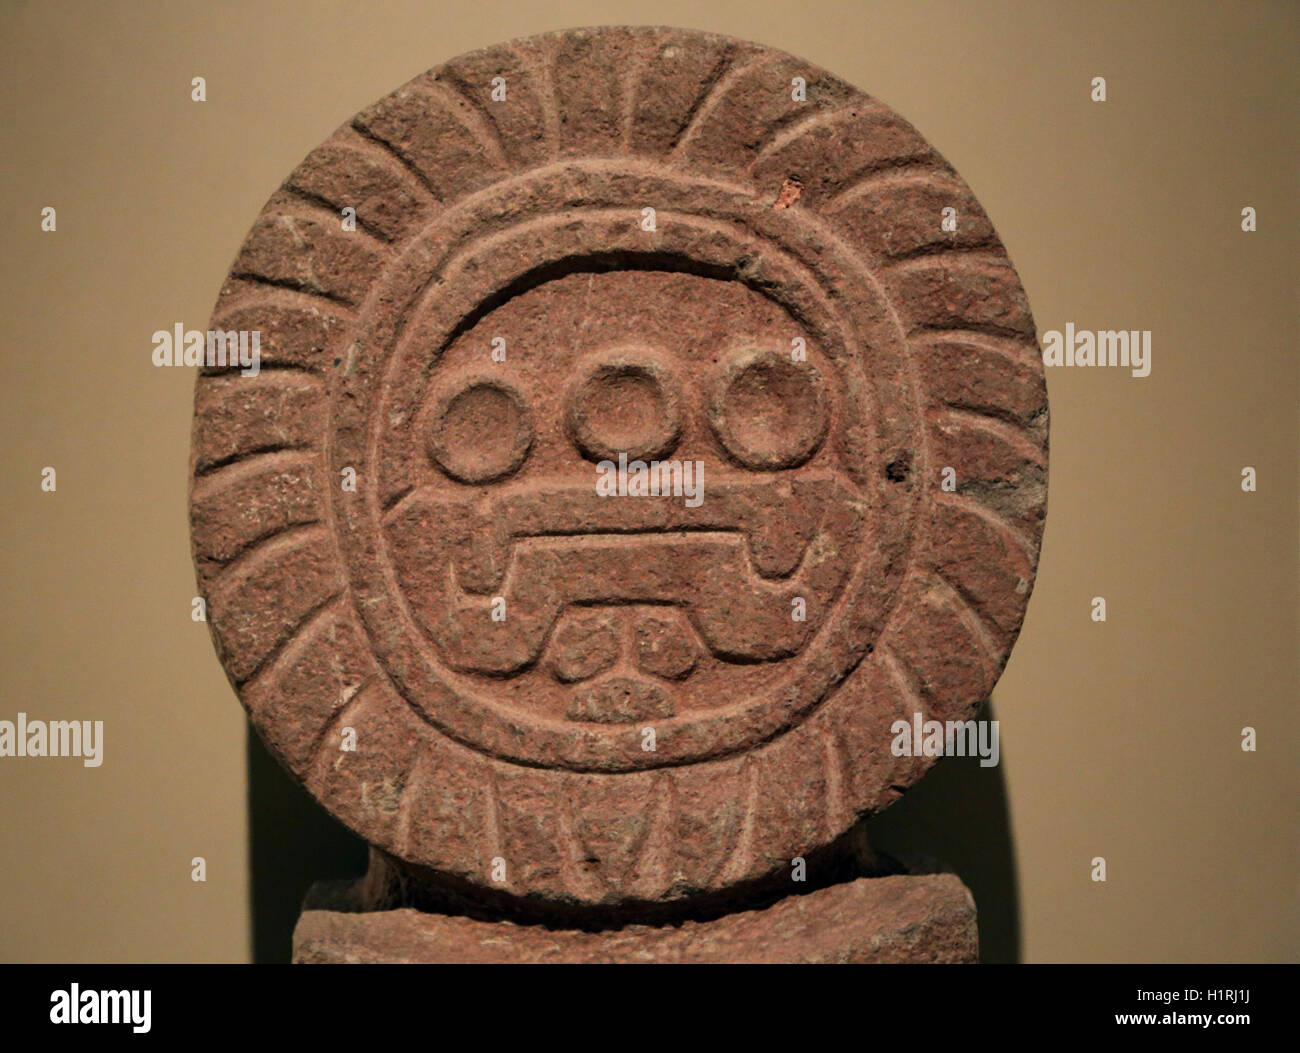 America. Mexico. Teothihuacan. Stela. 3rd-7th century. Stone. - Stock Image